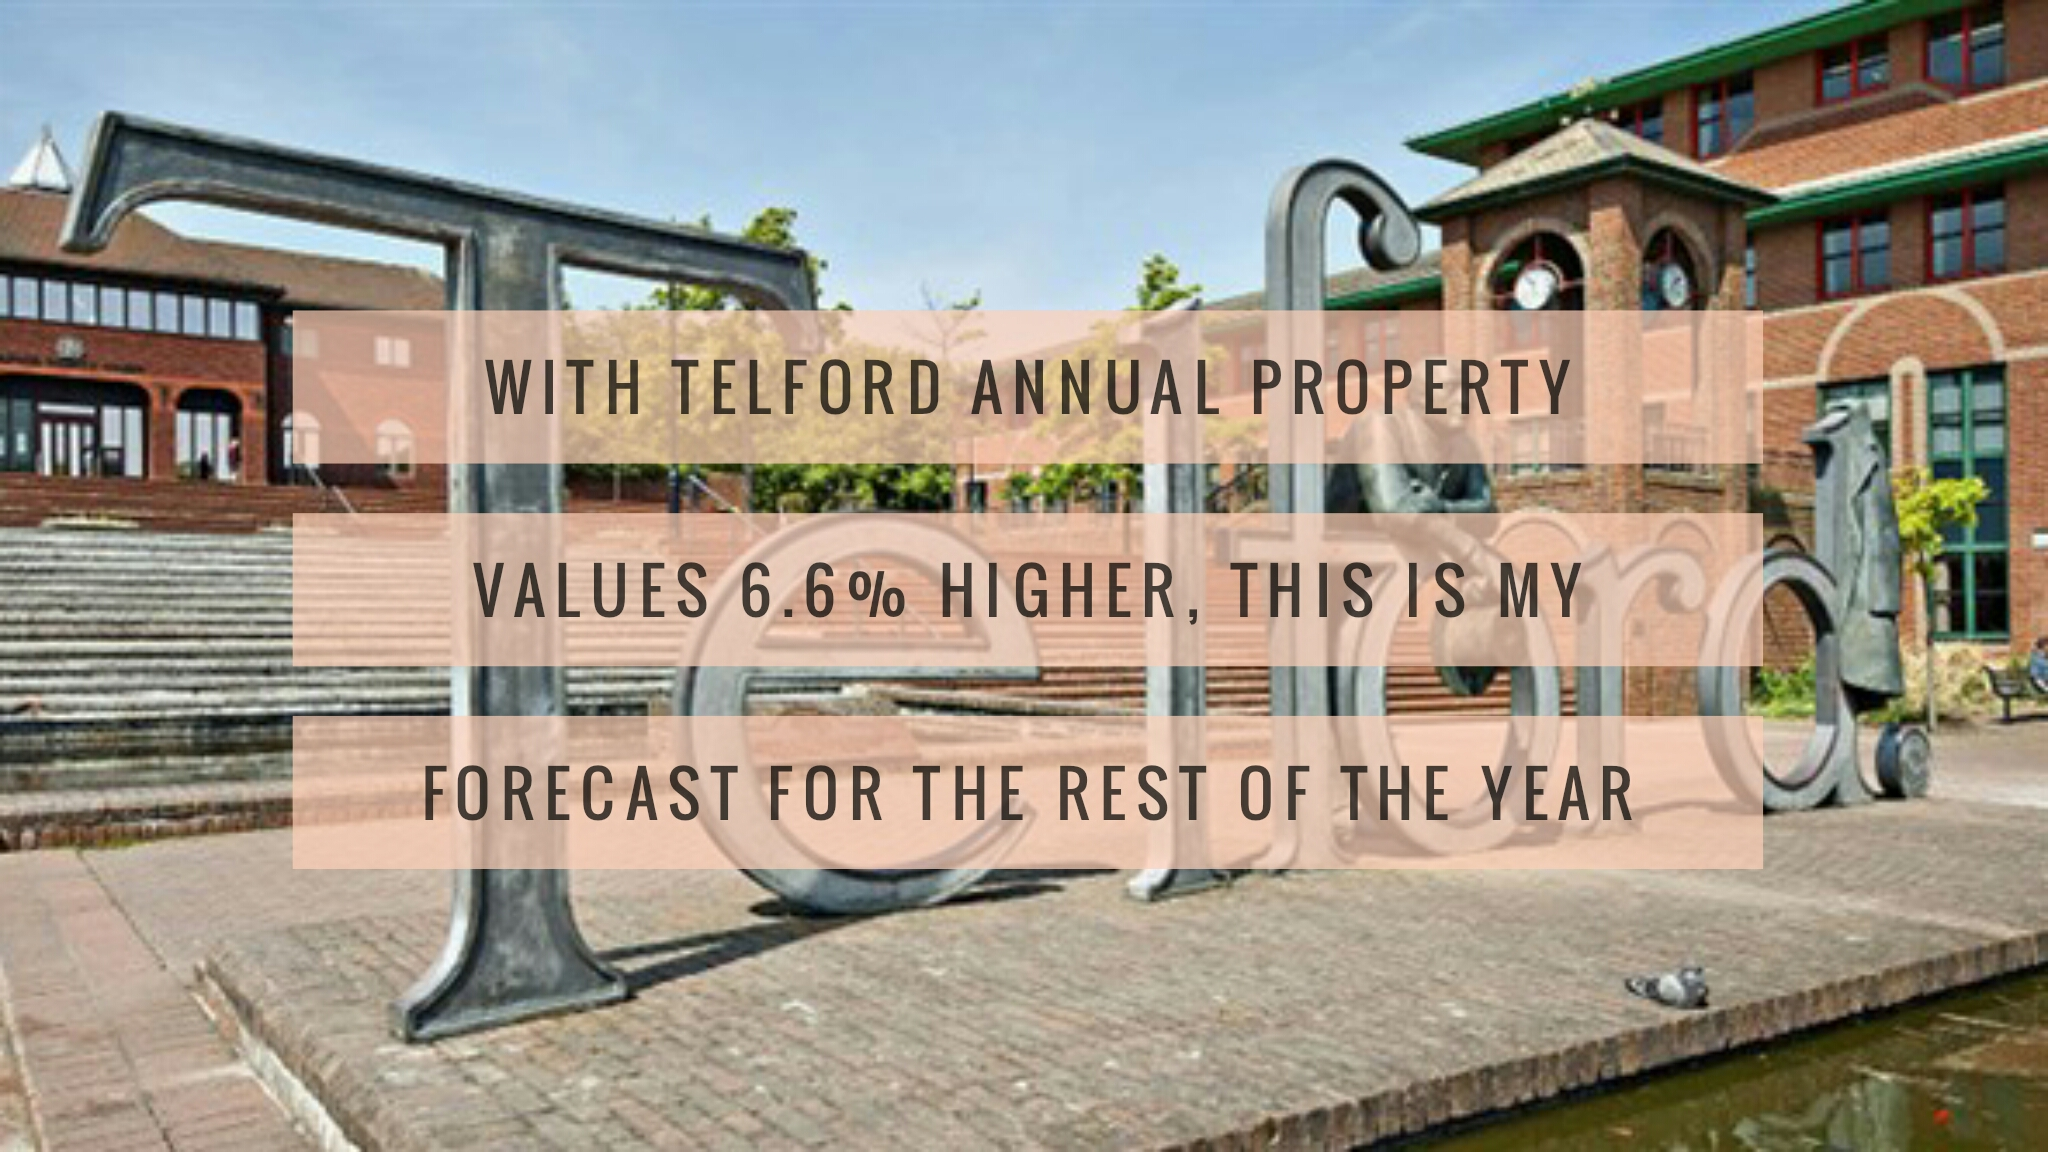 With Telford Annual Property Values 6.6% Higher, This is My Forecast for the rest of the year